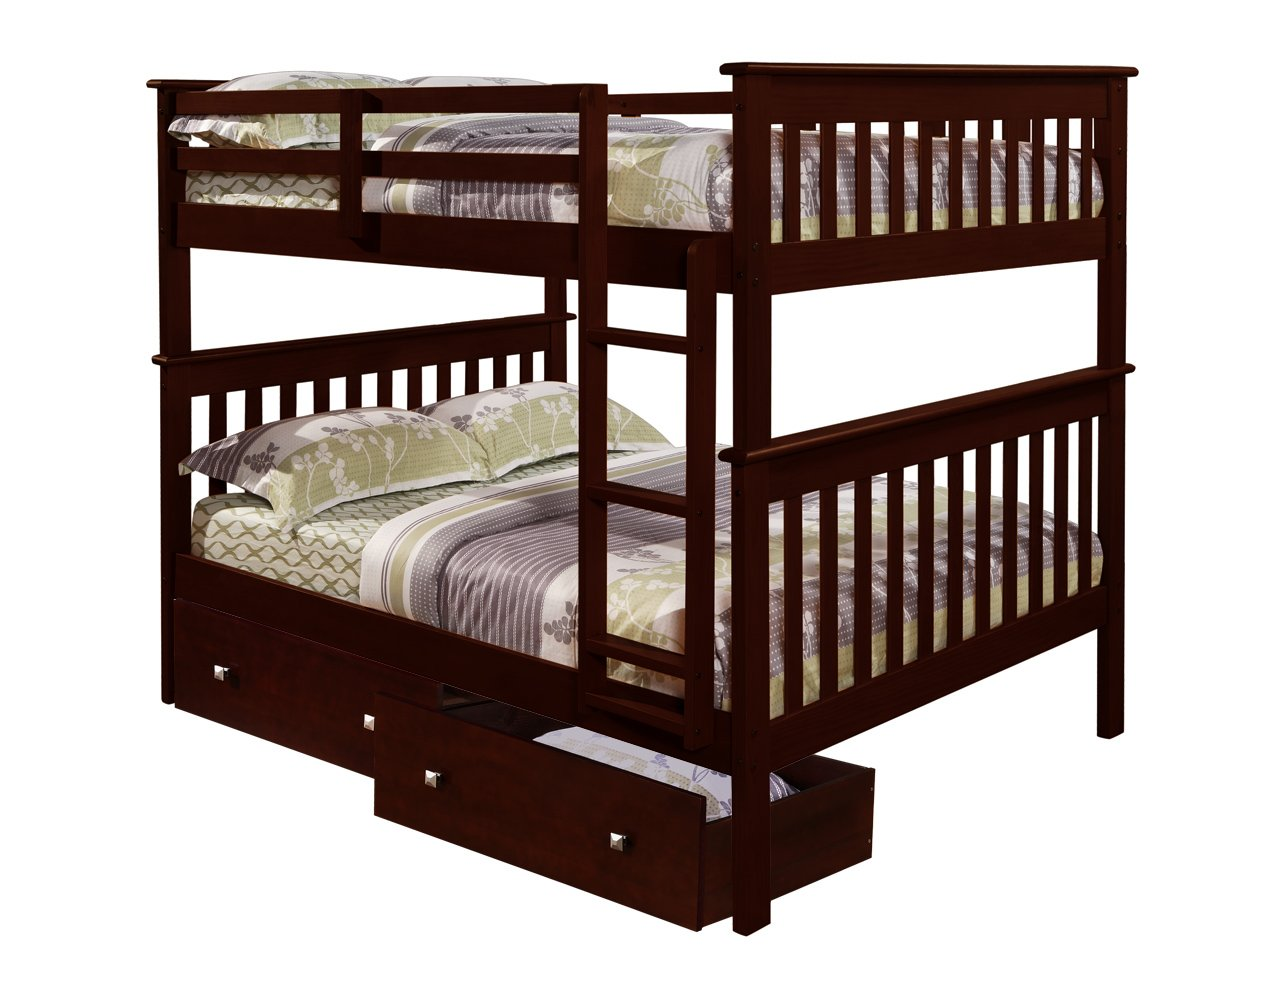 storage styles home beds for main kids trundle furniture full reece ladder bunk twin over your with bed slat joss and